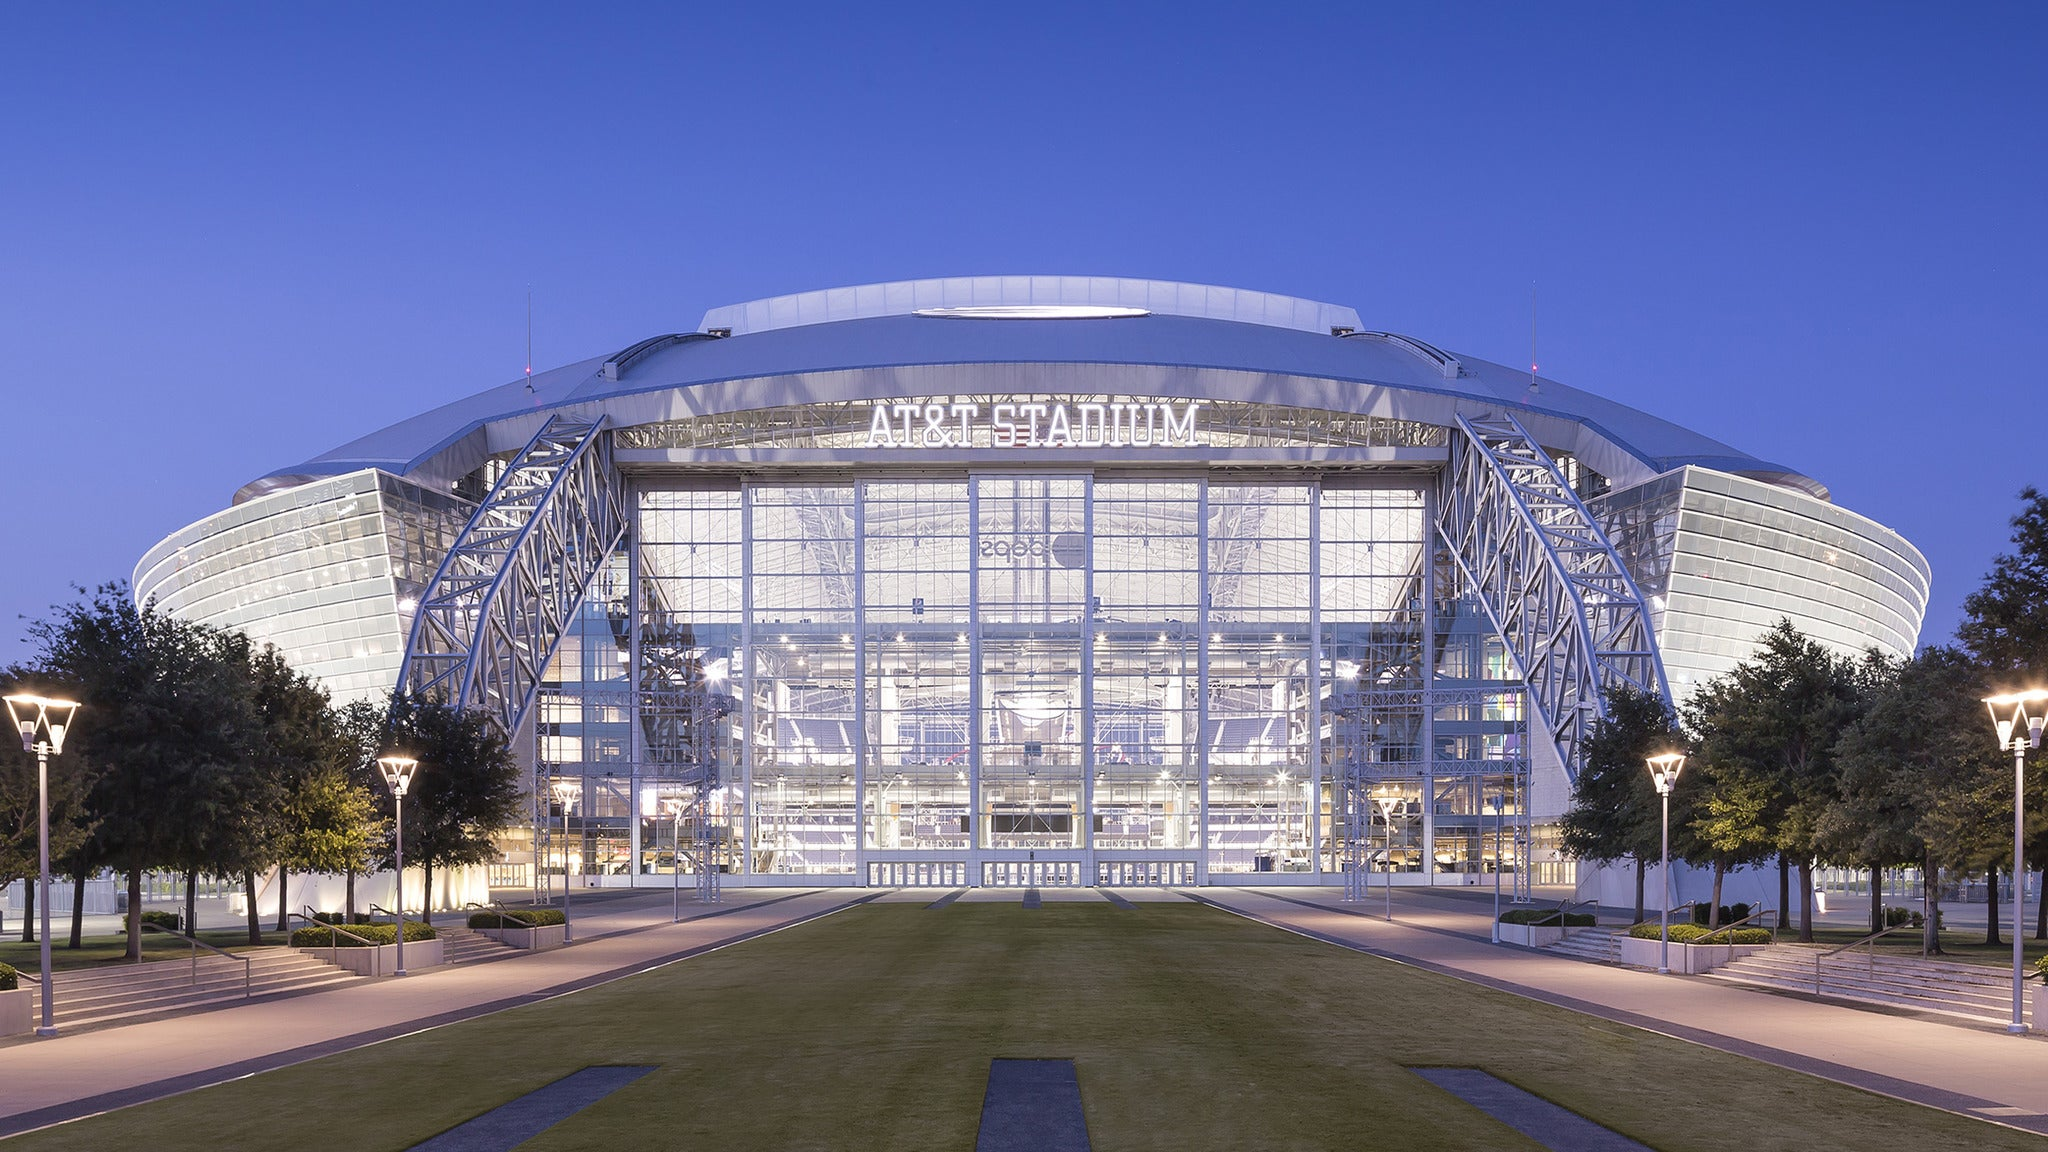 Tour of AT&T Stadium Art